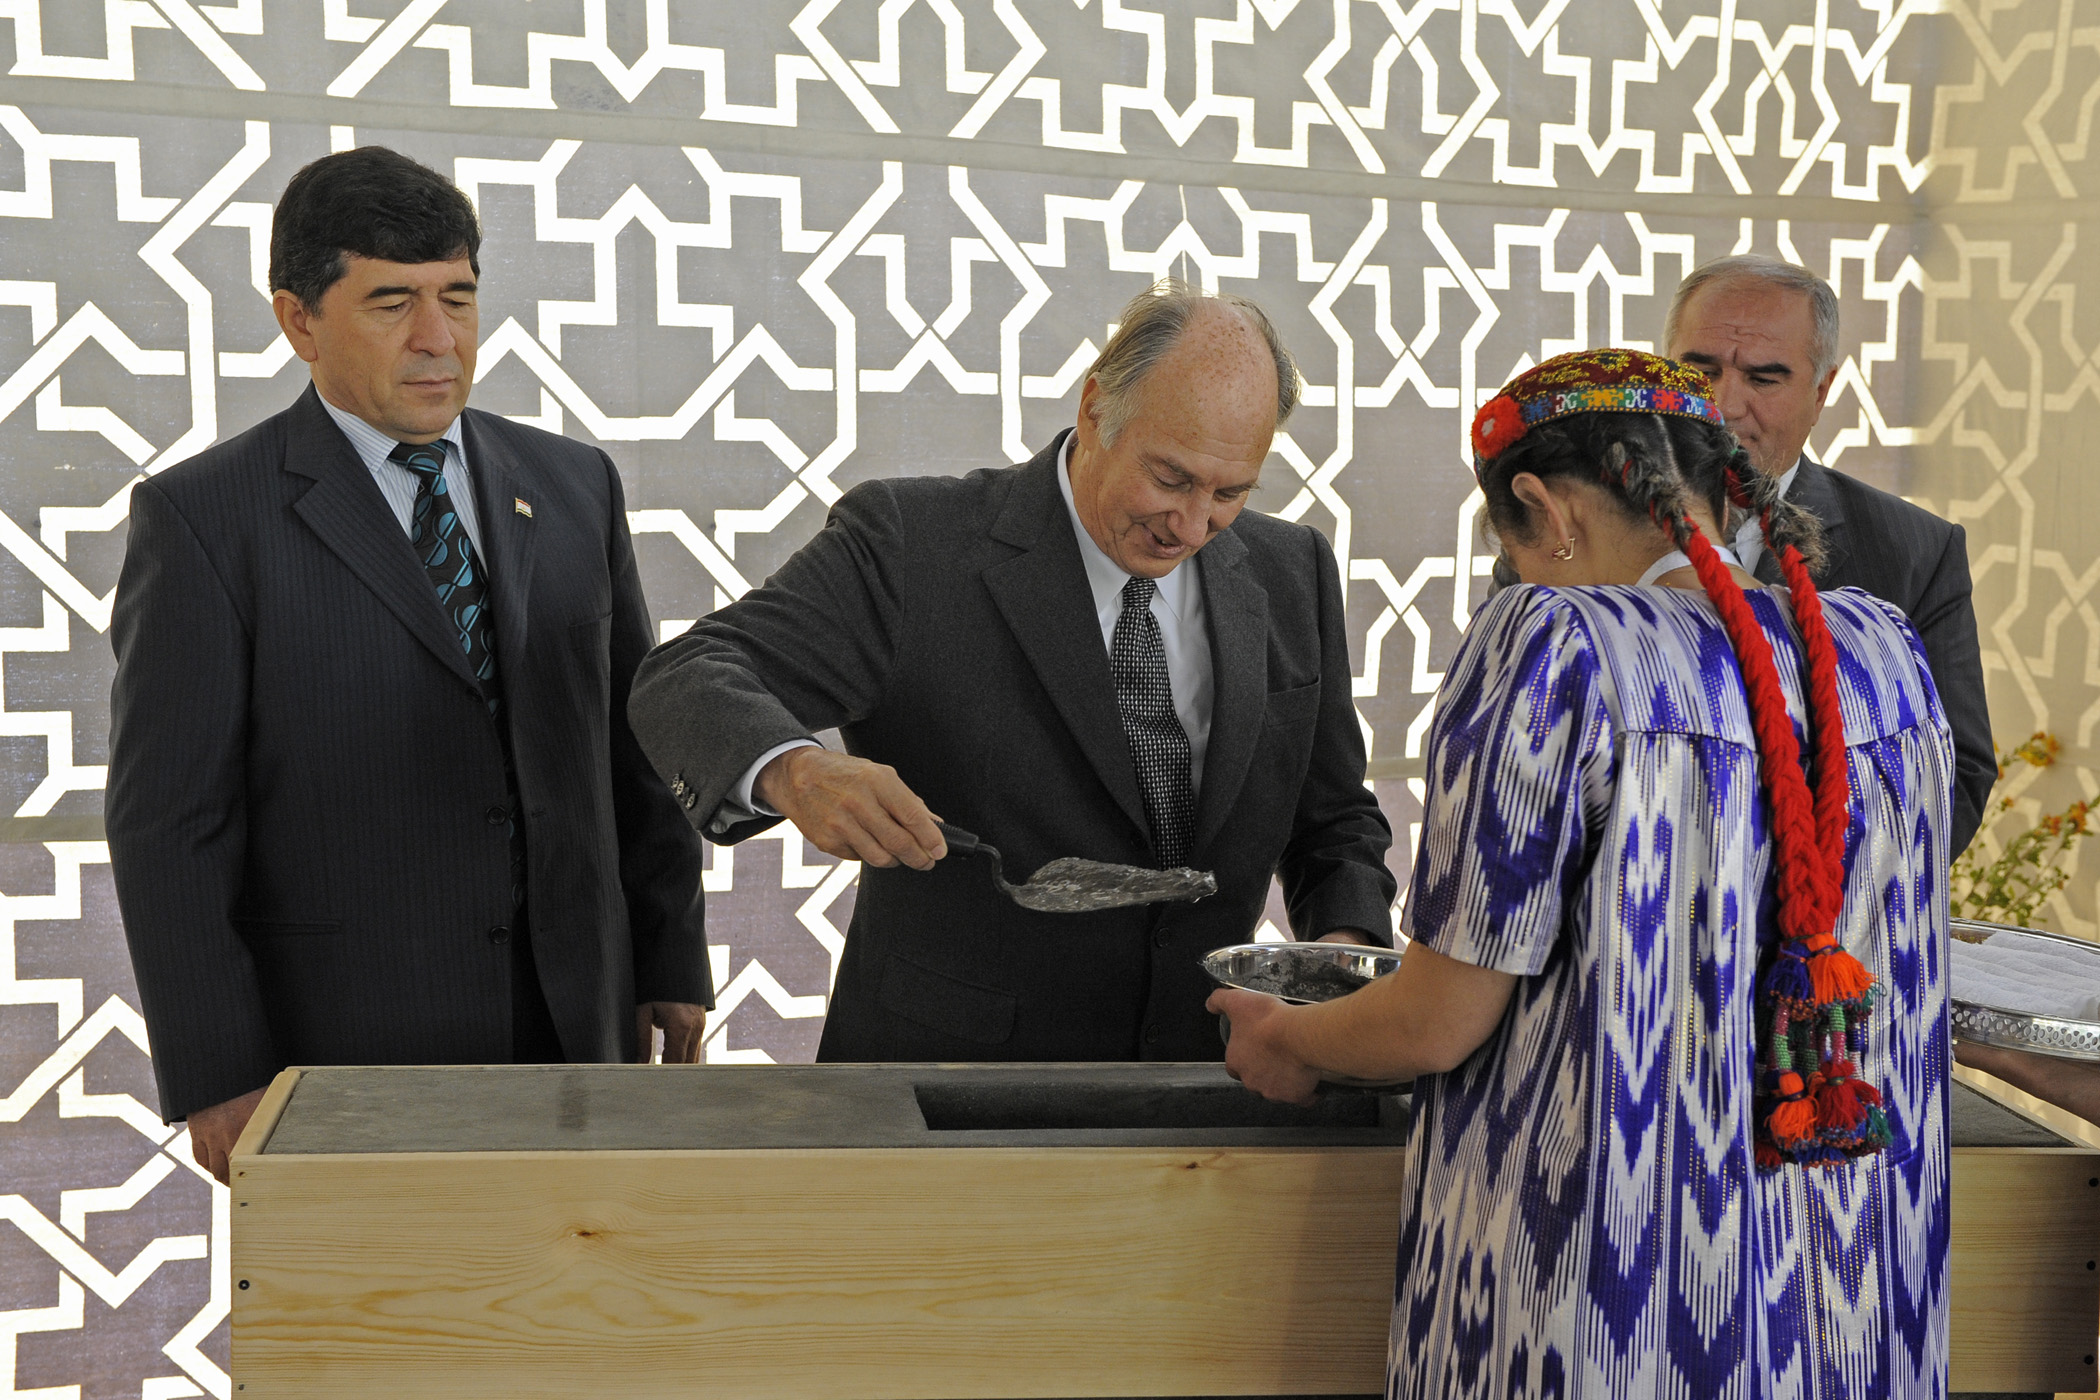 Joined by the First Deputy Prime Minister and the Governor of Gorno-Badakhshan, Mawlana Hazar Imam lays the foundation for the Ismaili Jamatkhana and Centre in Khorog. Photo: Gary Otte